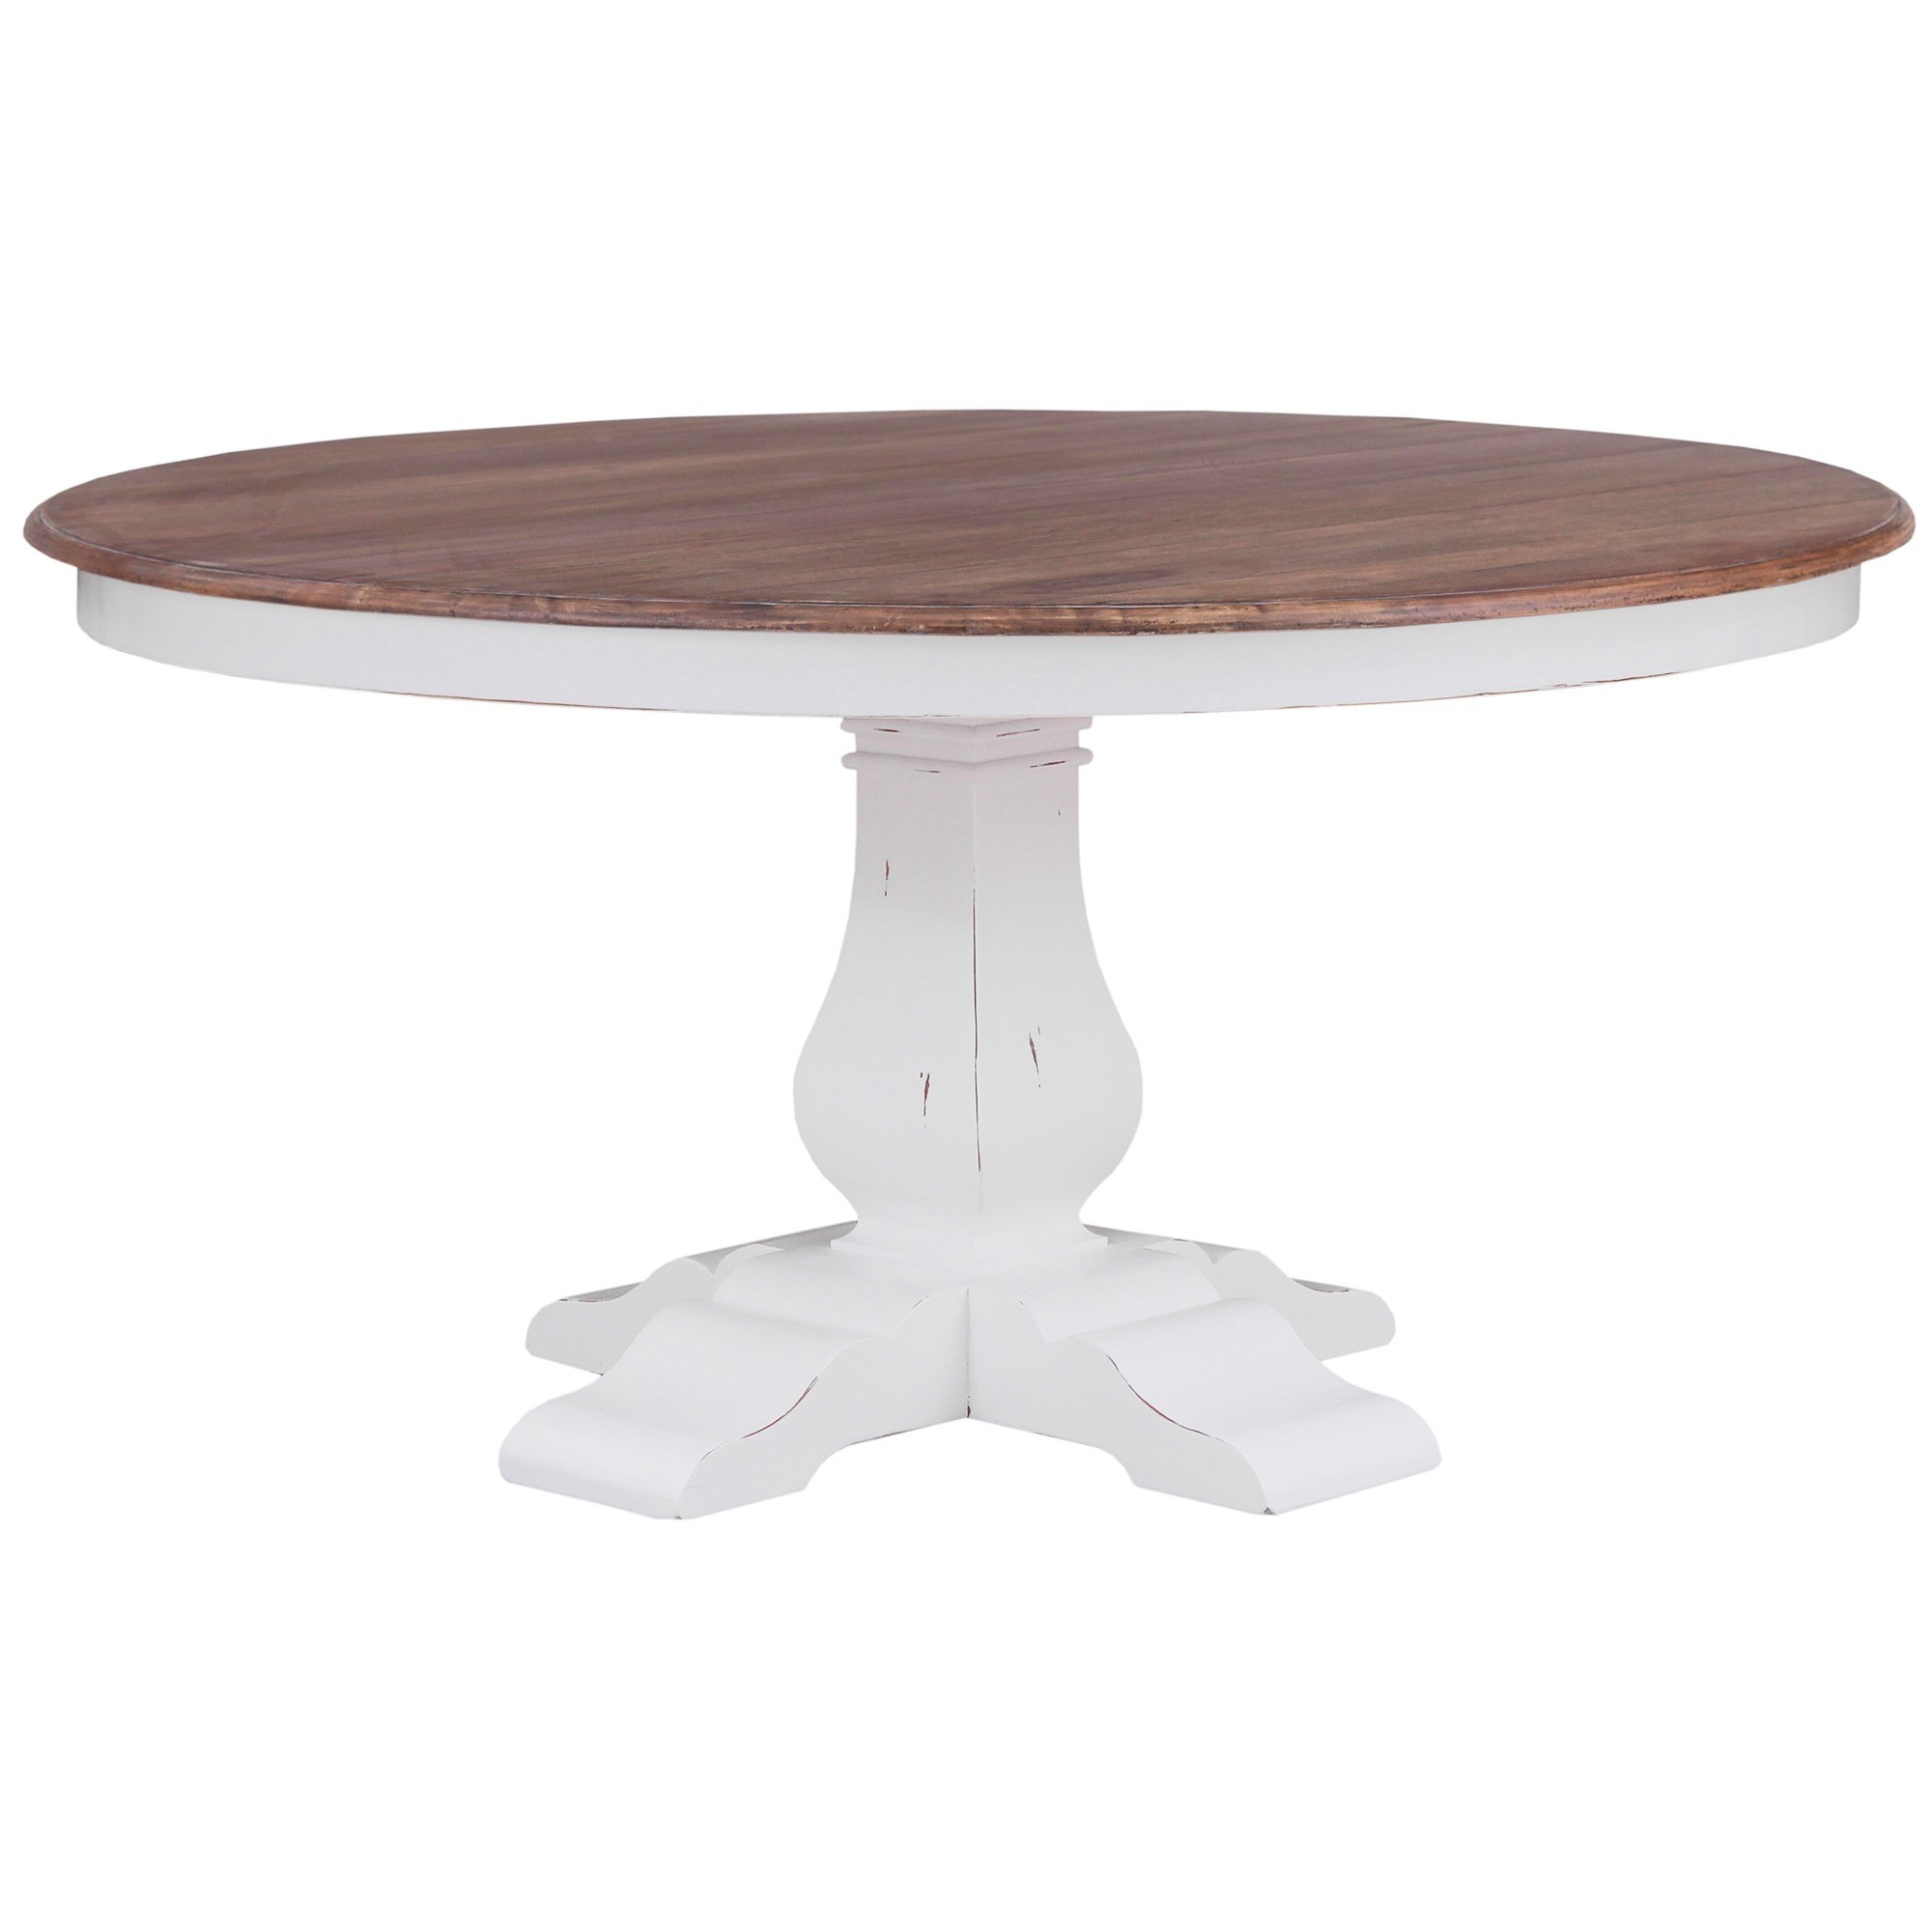 Calverton Mahogany Timber Round Dining Table, 153cm, Antique French Oak / Distressed White